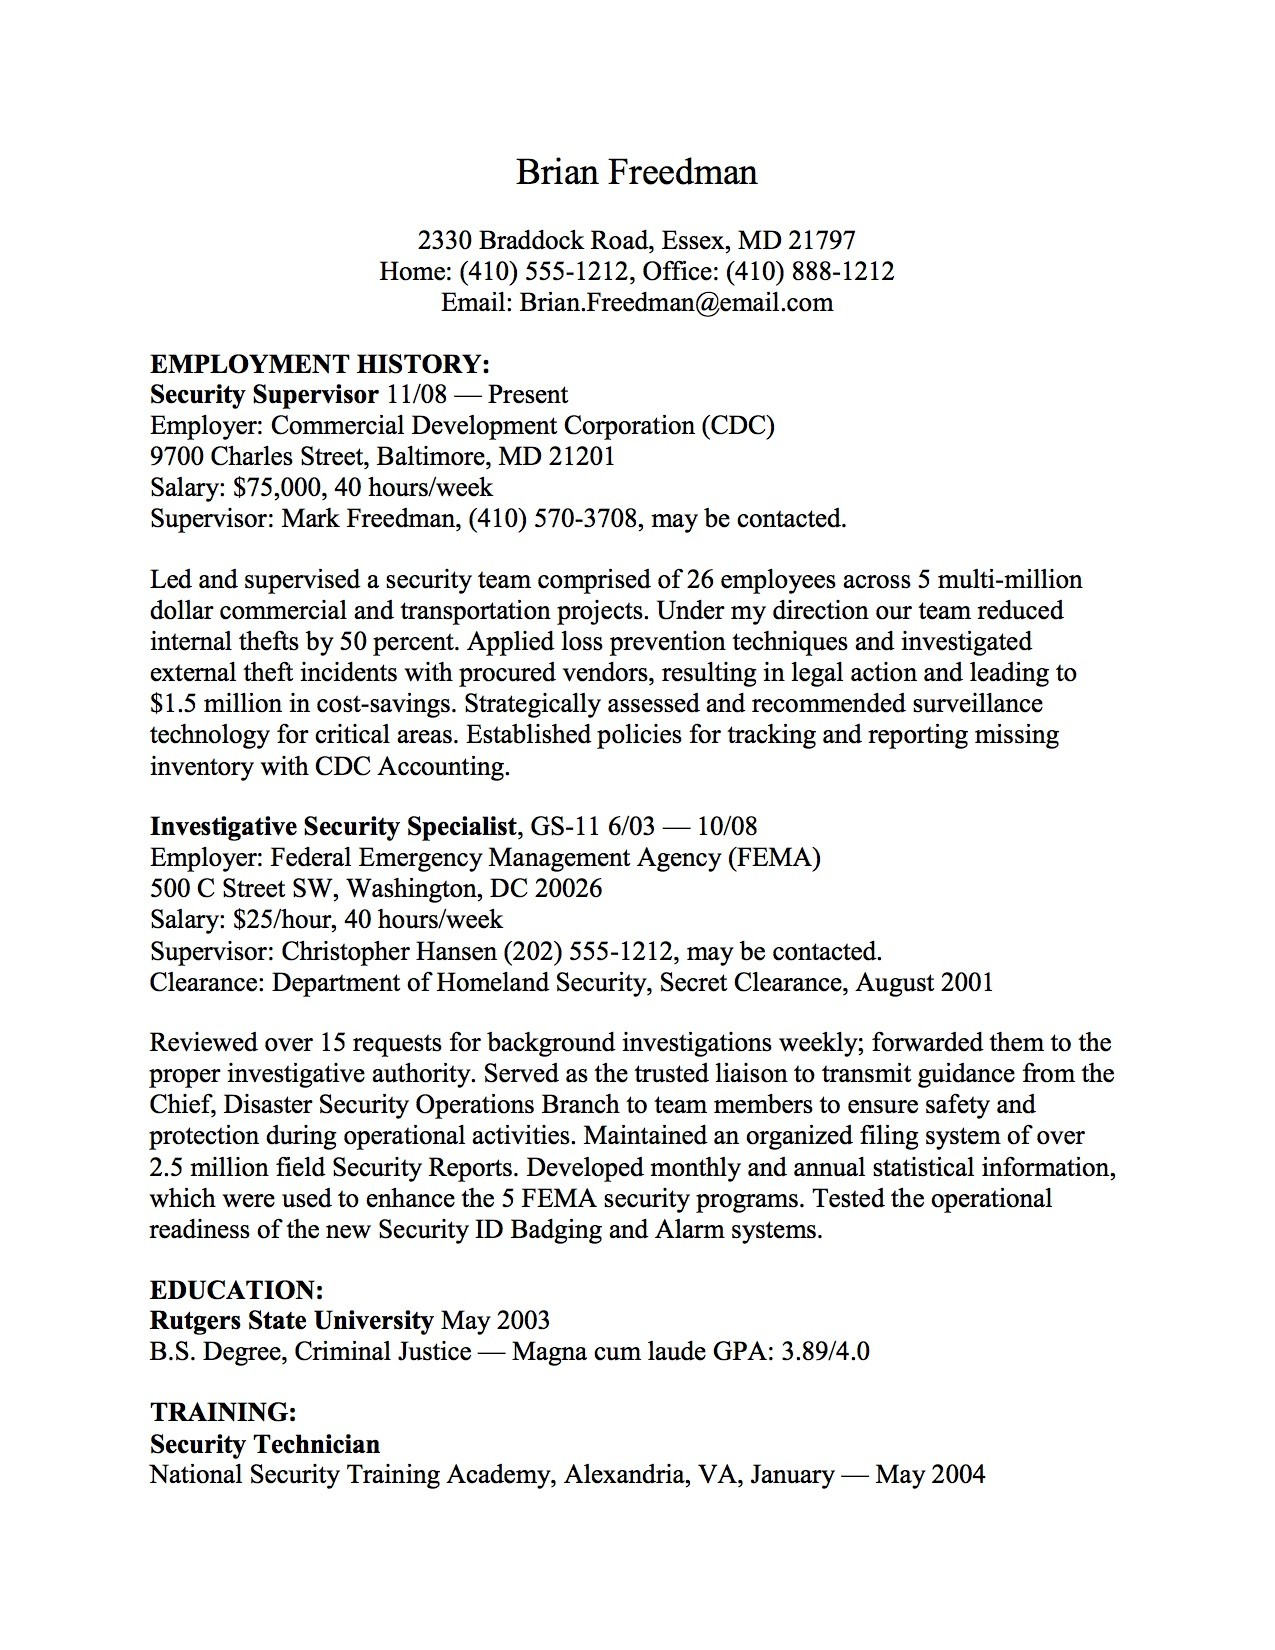 resume template usa jobs  USAJOBS Design System | Document - resume template usa jobs